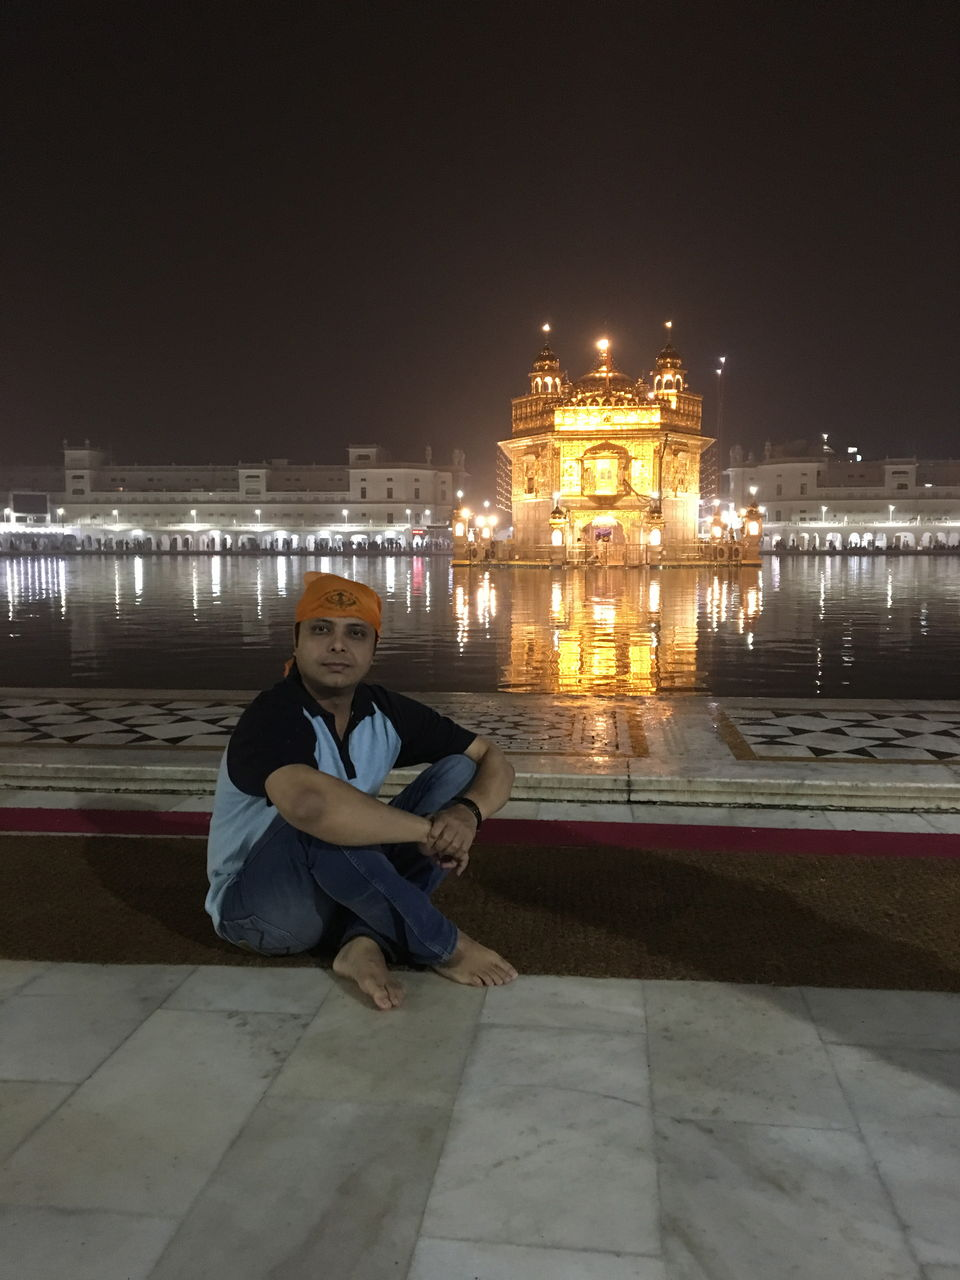 Photos of Amritsar- A trip to remember 1/8 by rchatterjee